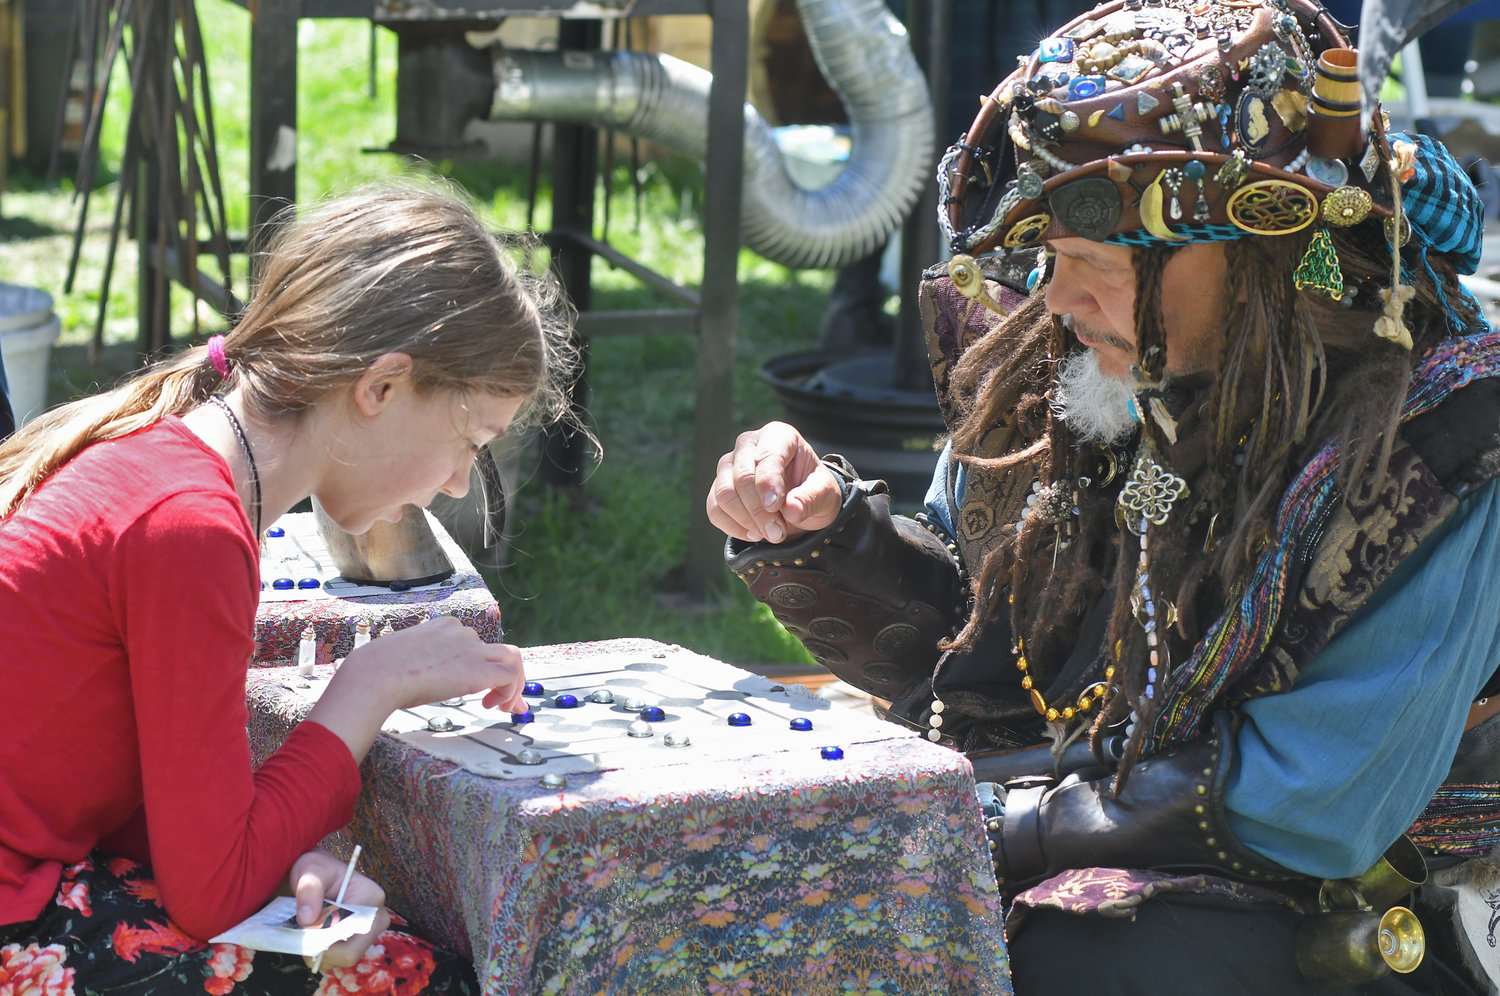 RENAISSANCE RECREATION — Katreena Natschke of Taberg tries the ancient board game of Nine Men's Morris against Capt. Armand Barrera of Amsterdam at the Holland Patent Mayfaire on the green Saturday.